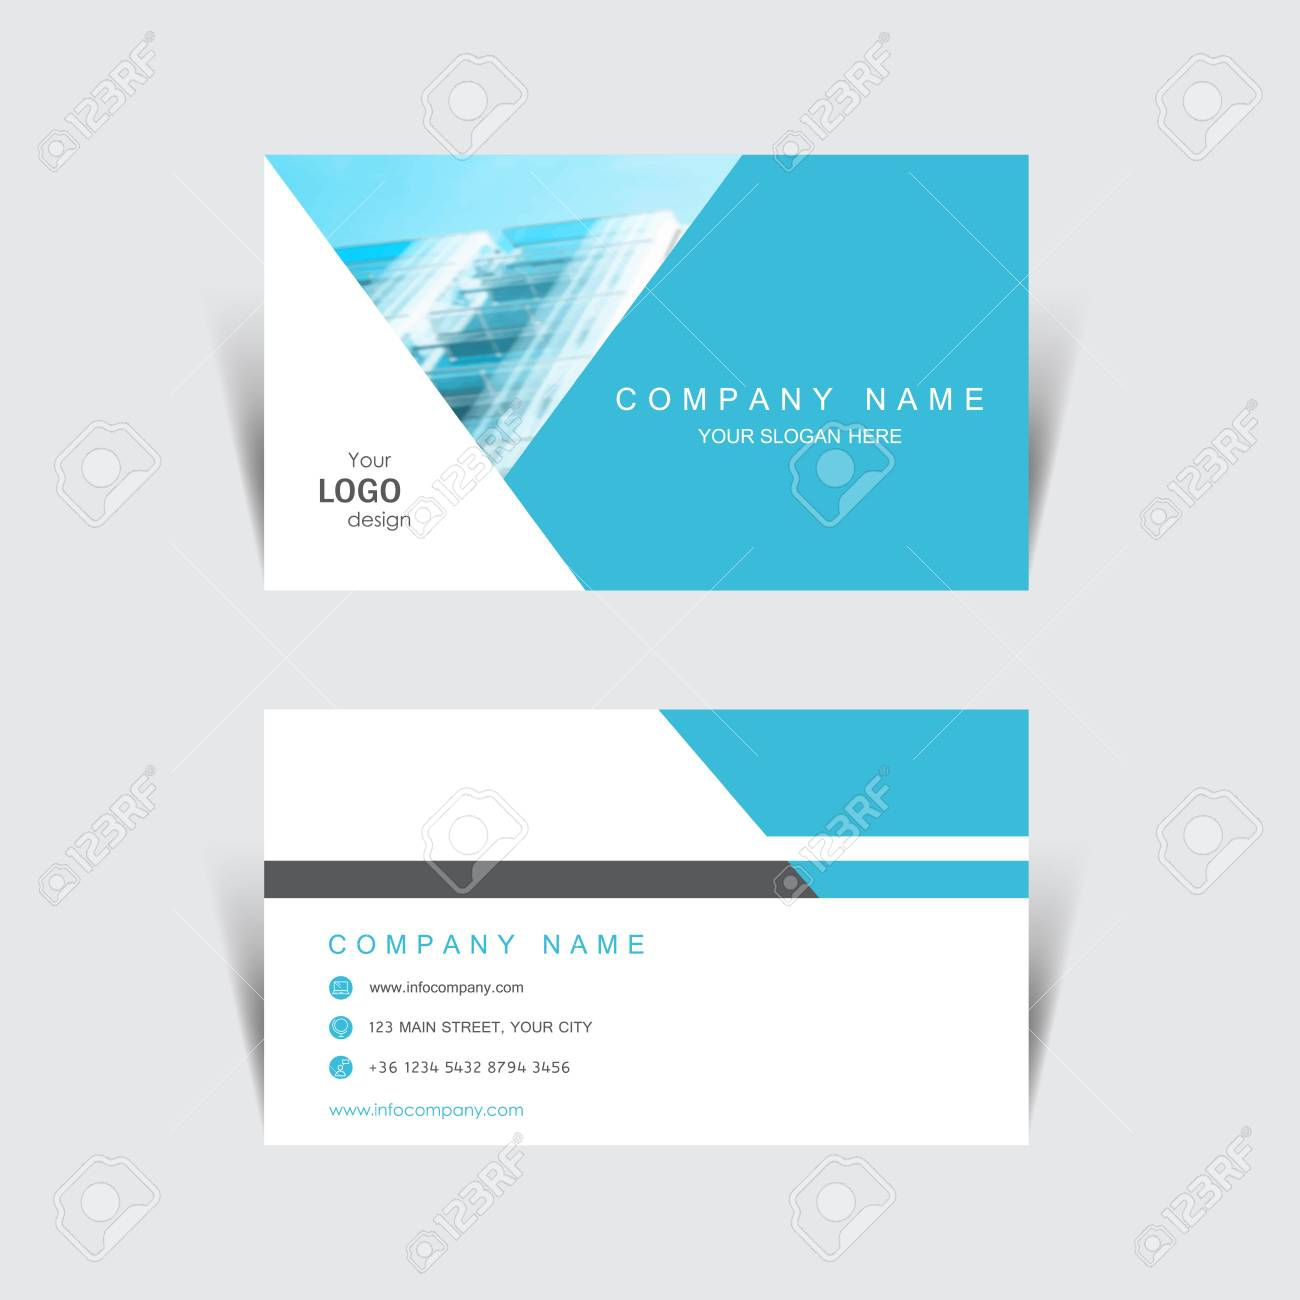 Business Card Print Template Design Vector Illustration Stationery